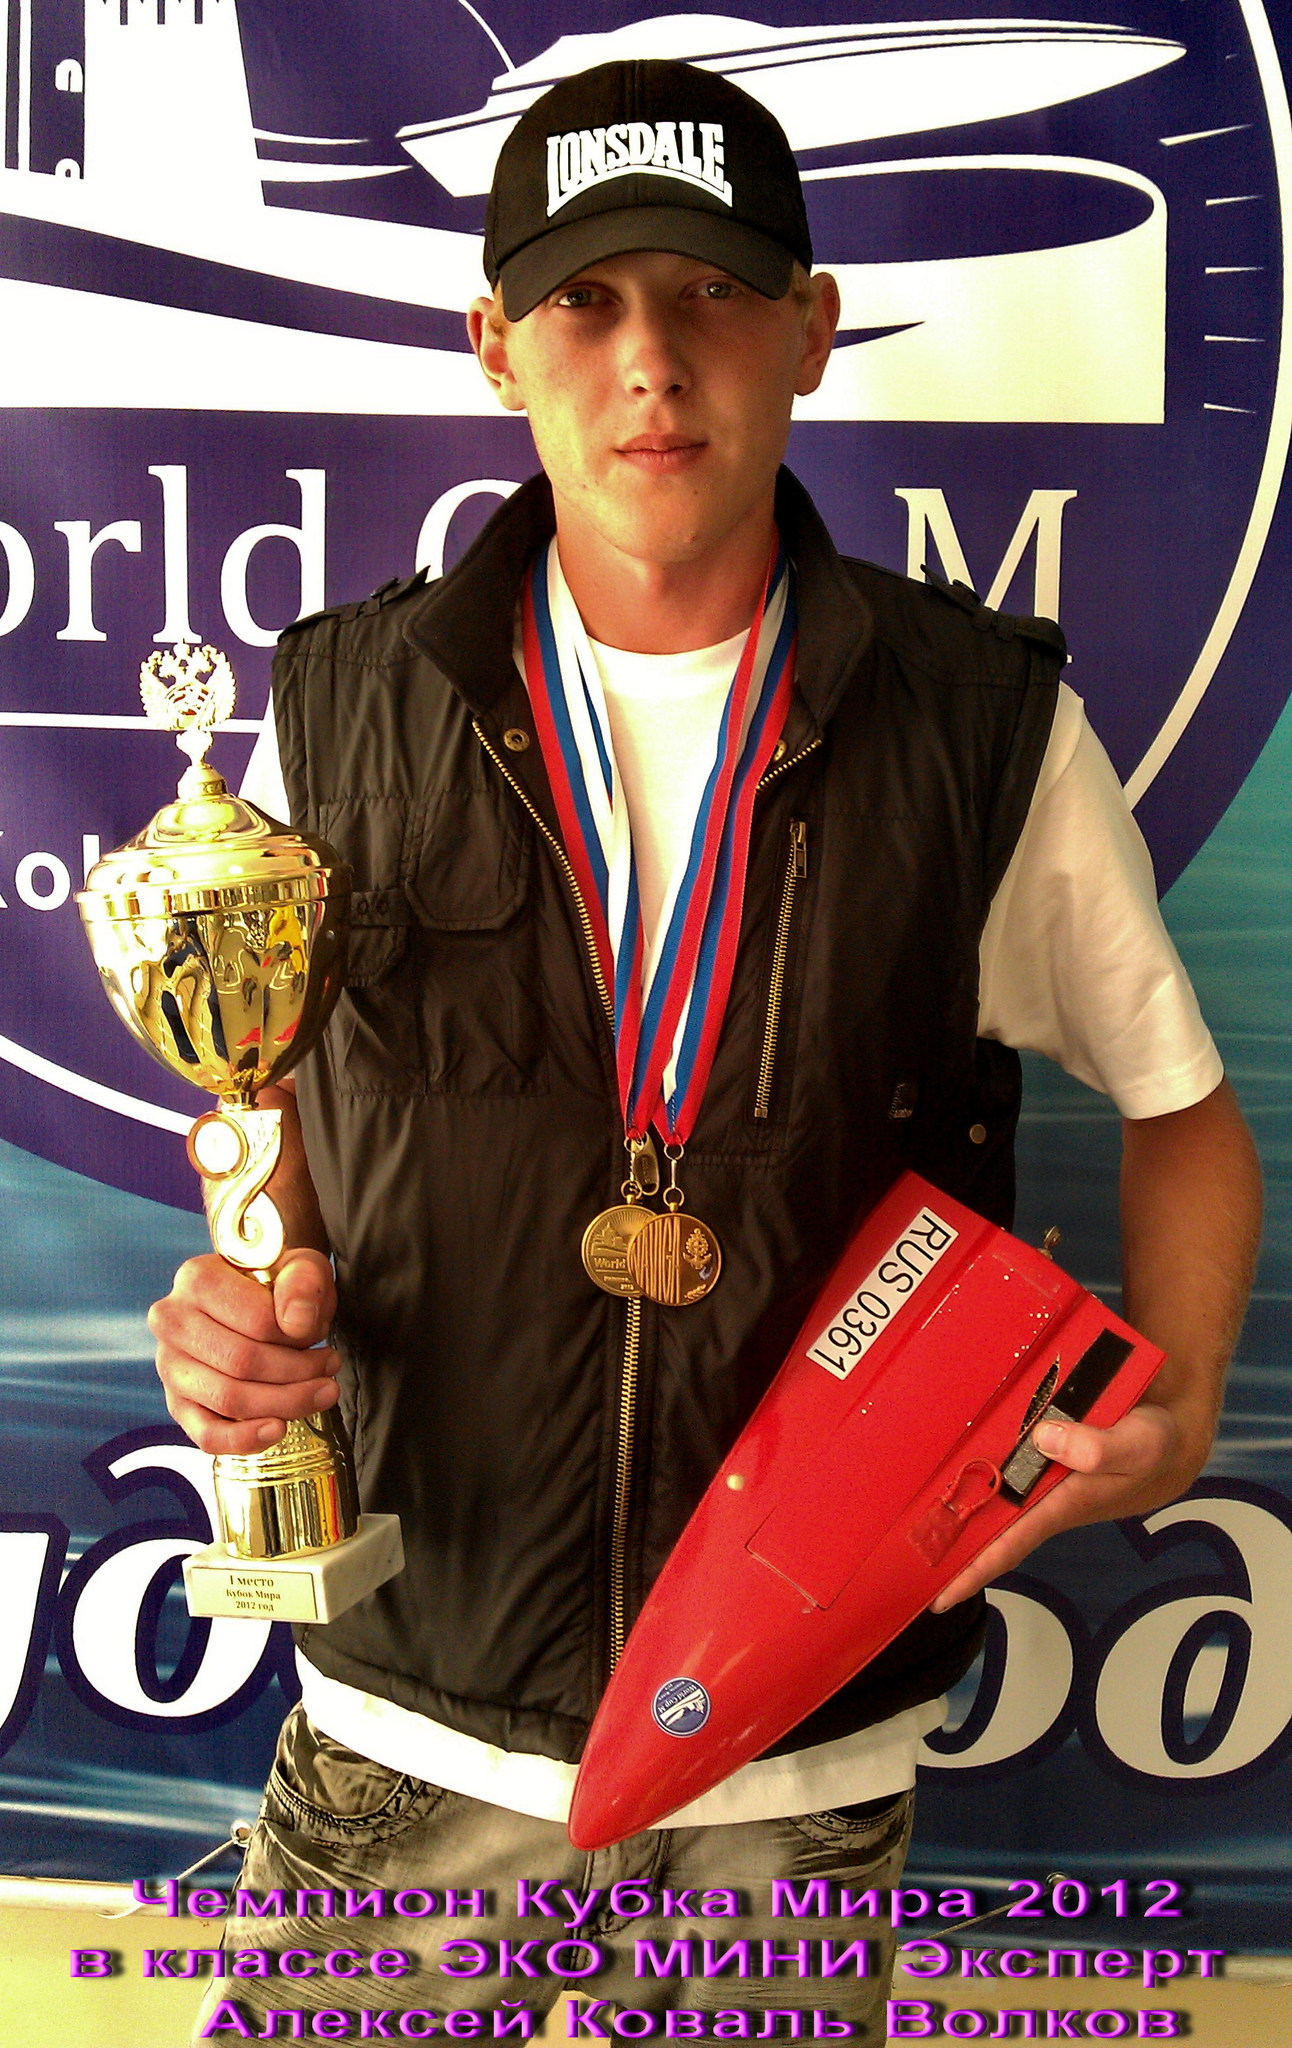 World CUP 2013 winner Alexey Koval Volkov. Russia